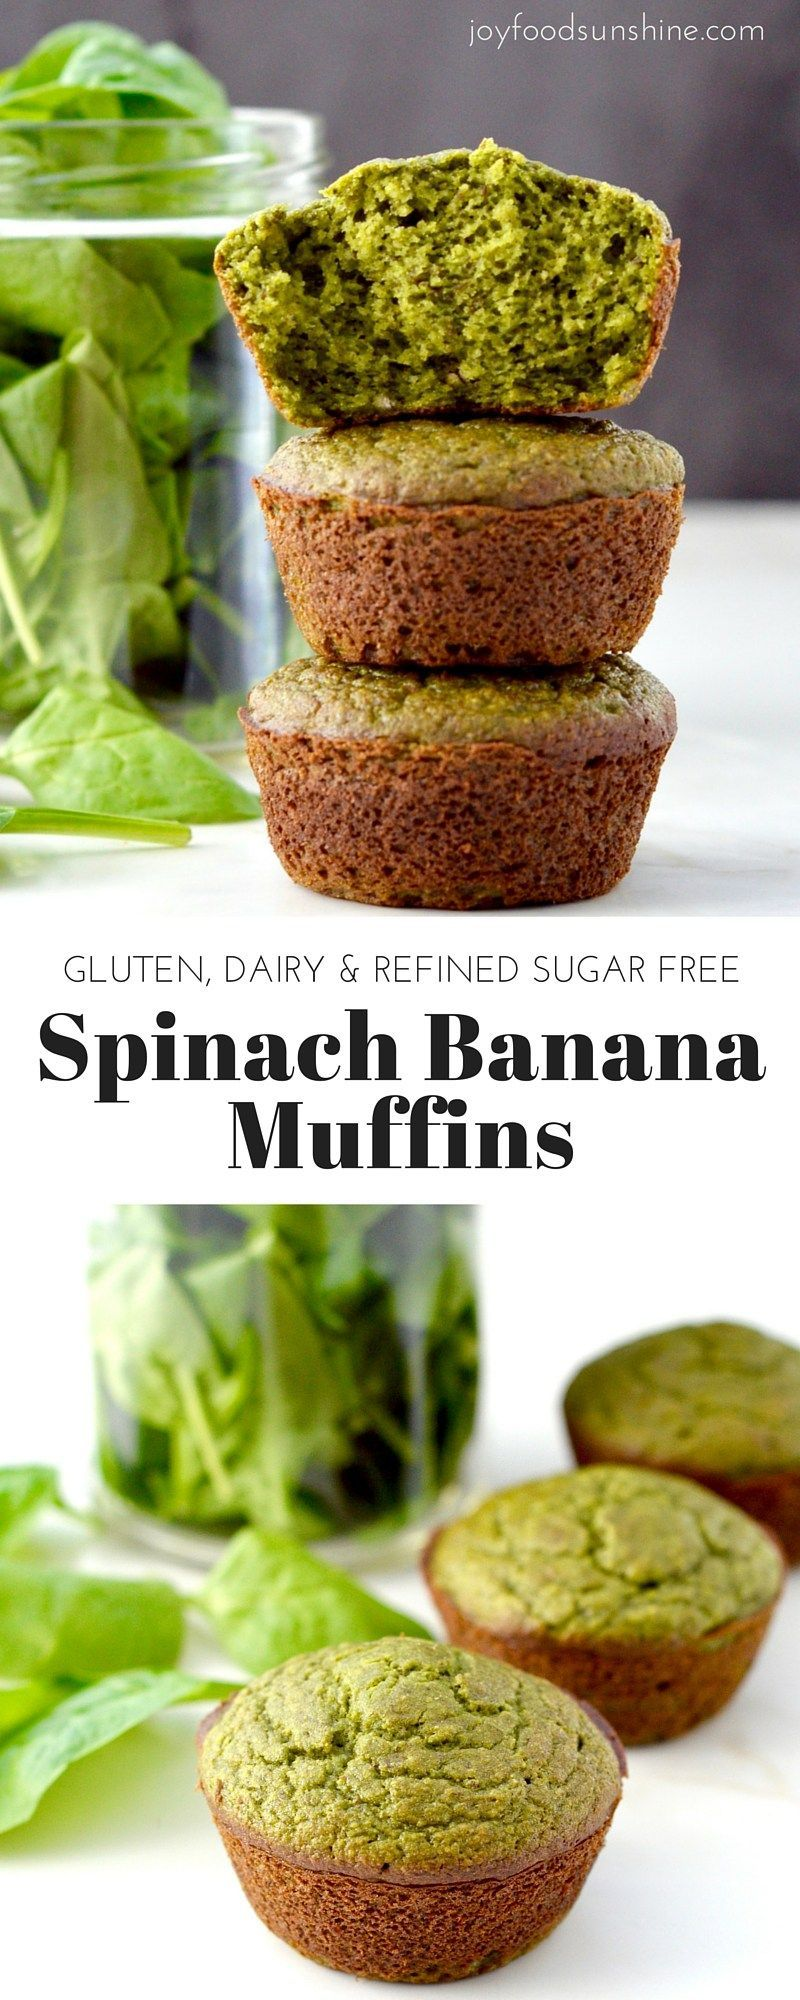 Banana Muffins! Gluten, dairy & refined sugar free! An easy, healthy, freezer-friendly breakfast recipe full of fruit and veggies!